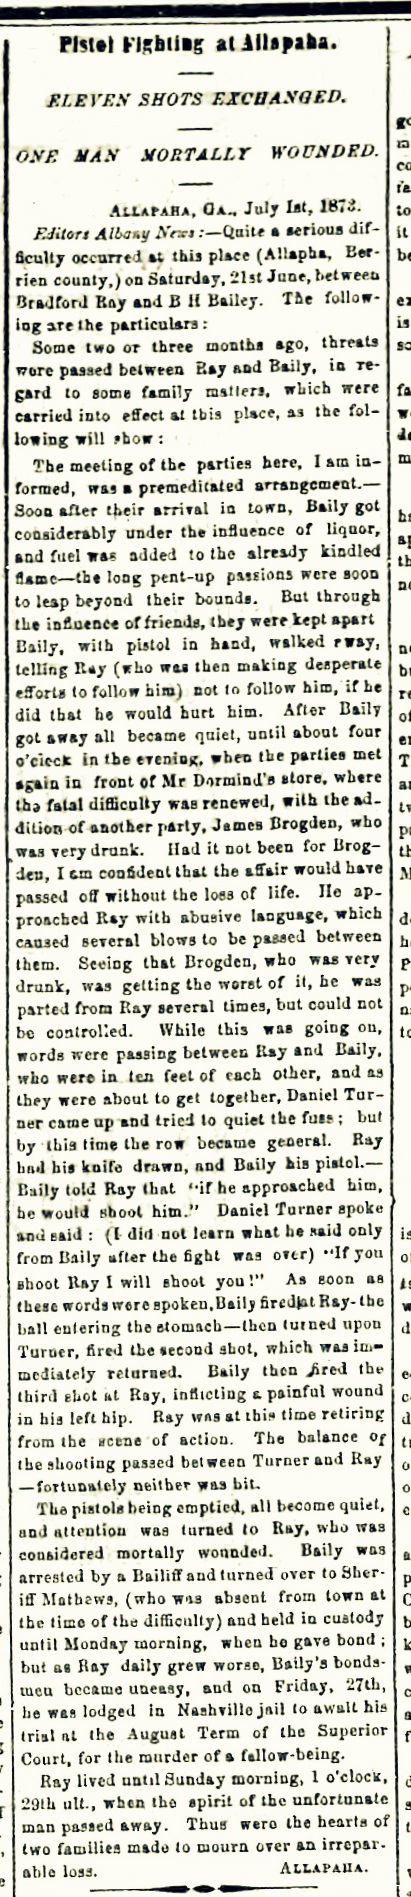 Albany News, July 4, 1873. Burrell Hamilton Bailey shoots Bradford Ray.